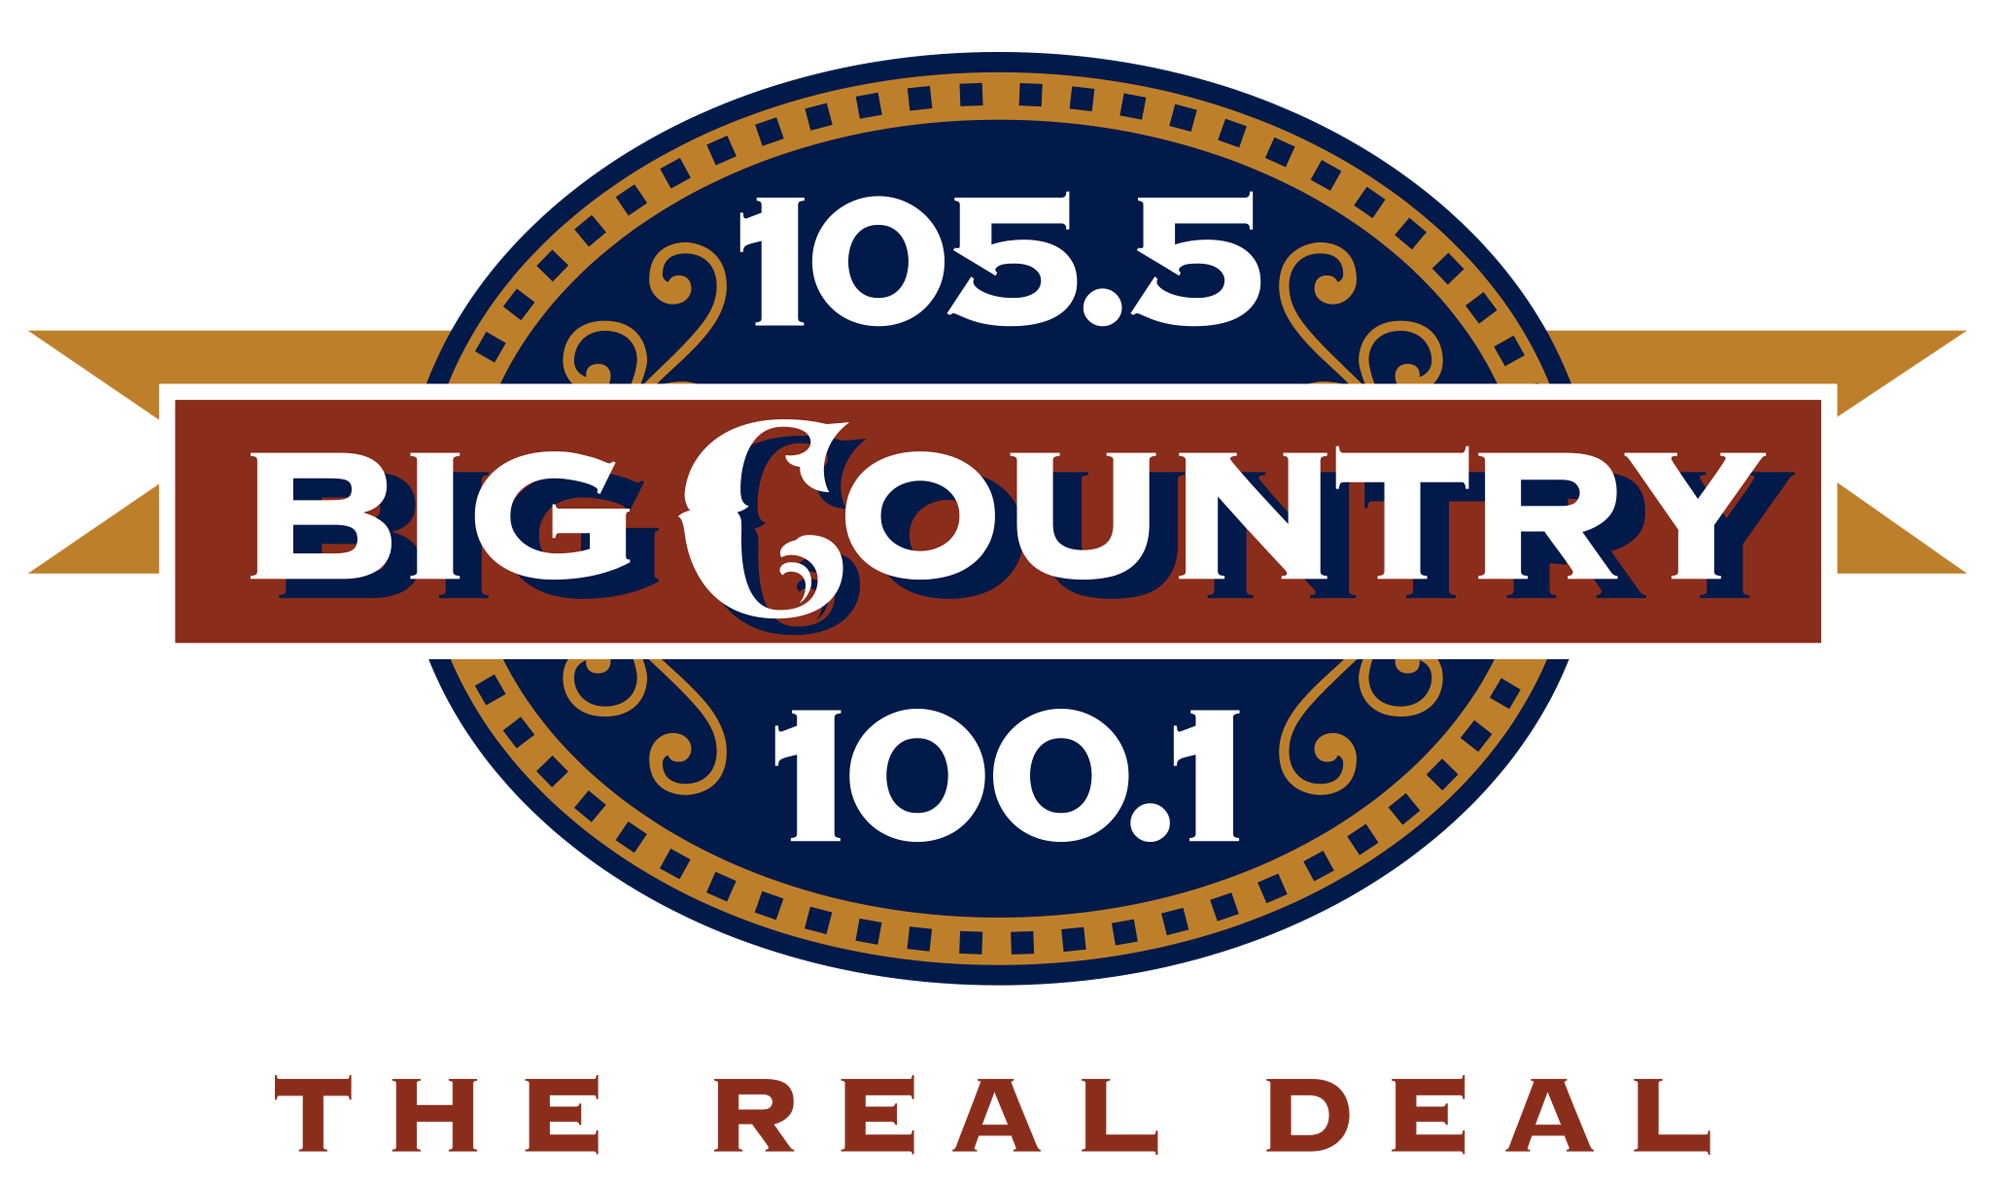 The Rebel & Big Country Radio Stations